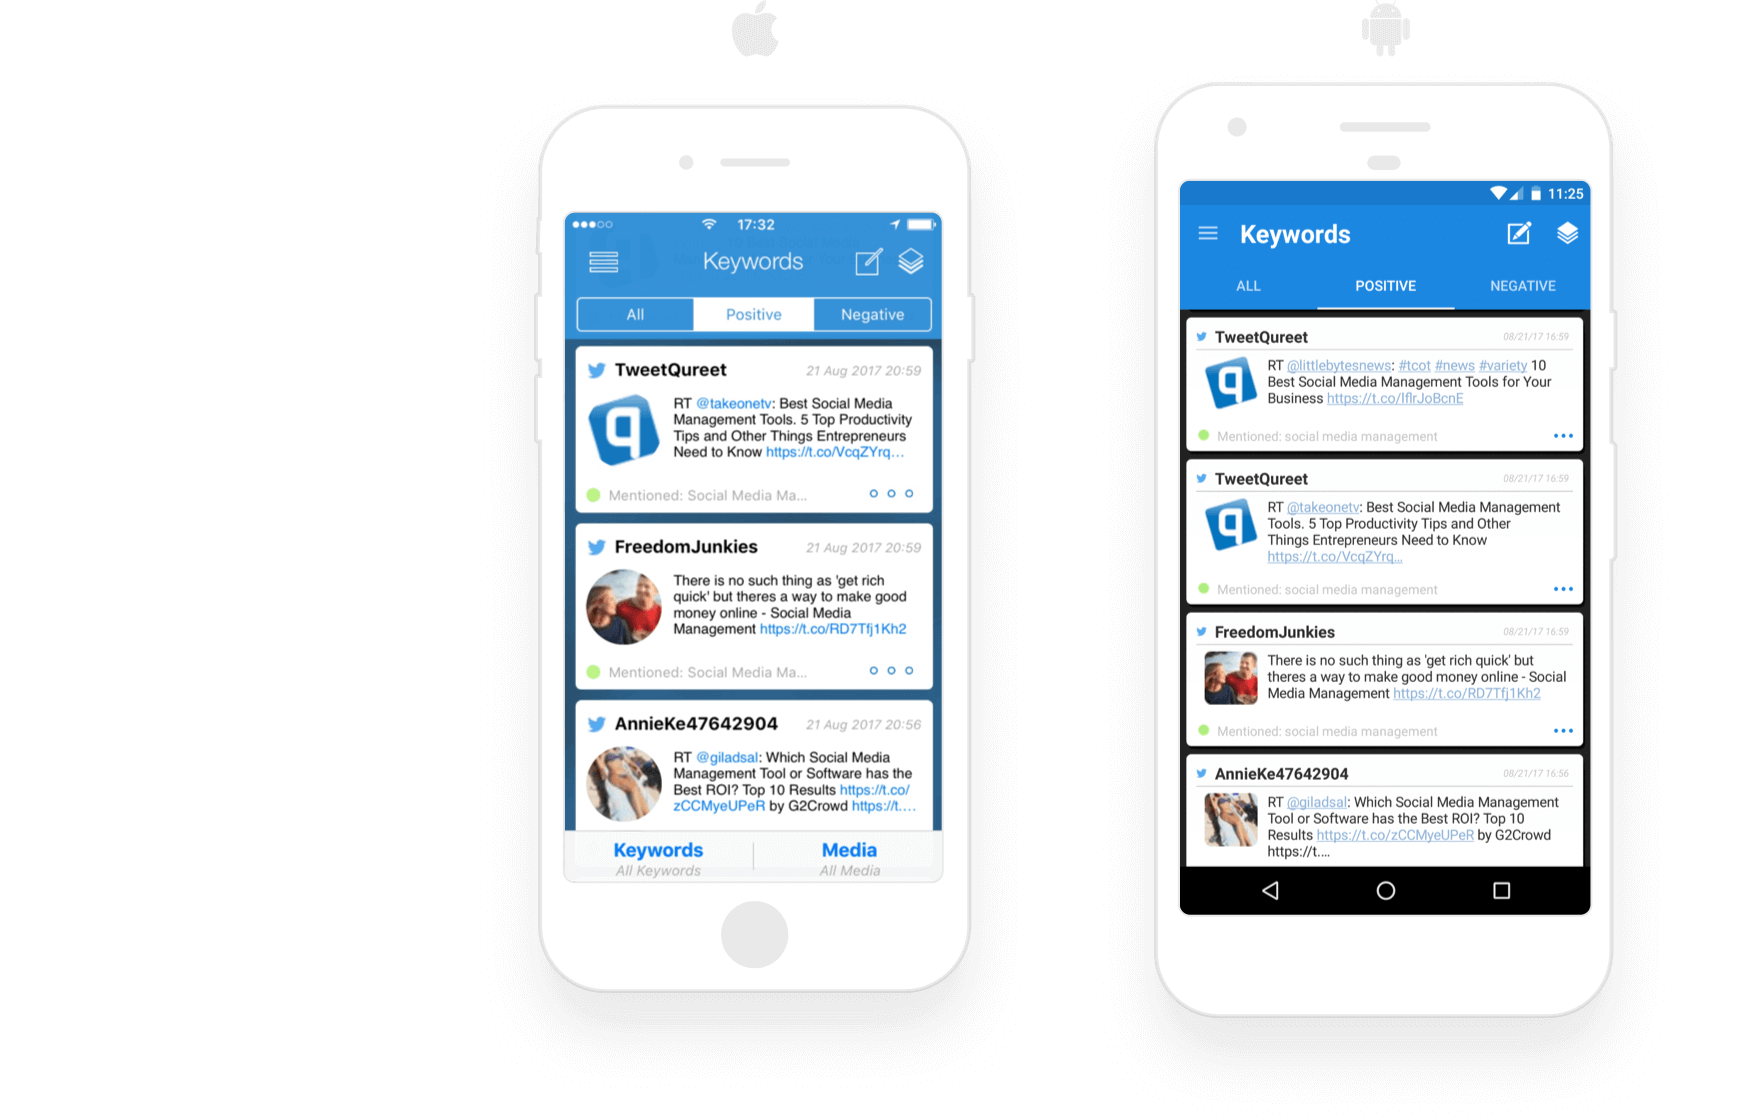 Act on social listening opportunities while mobile